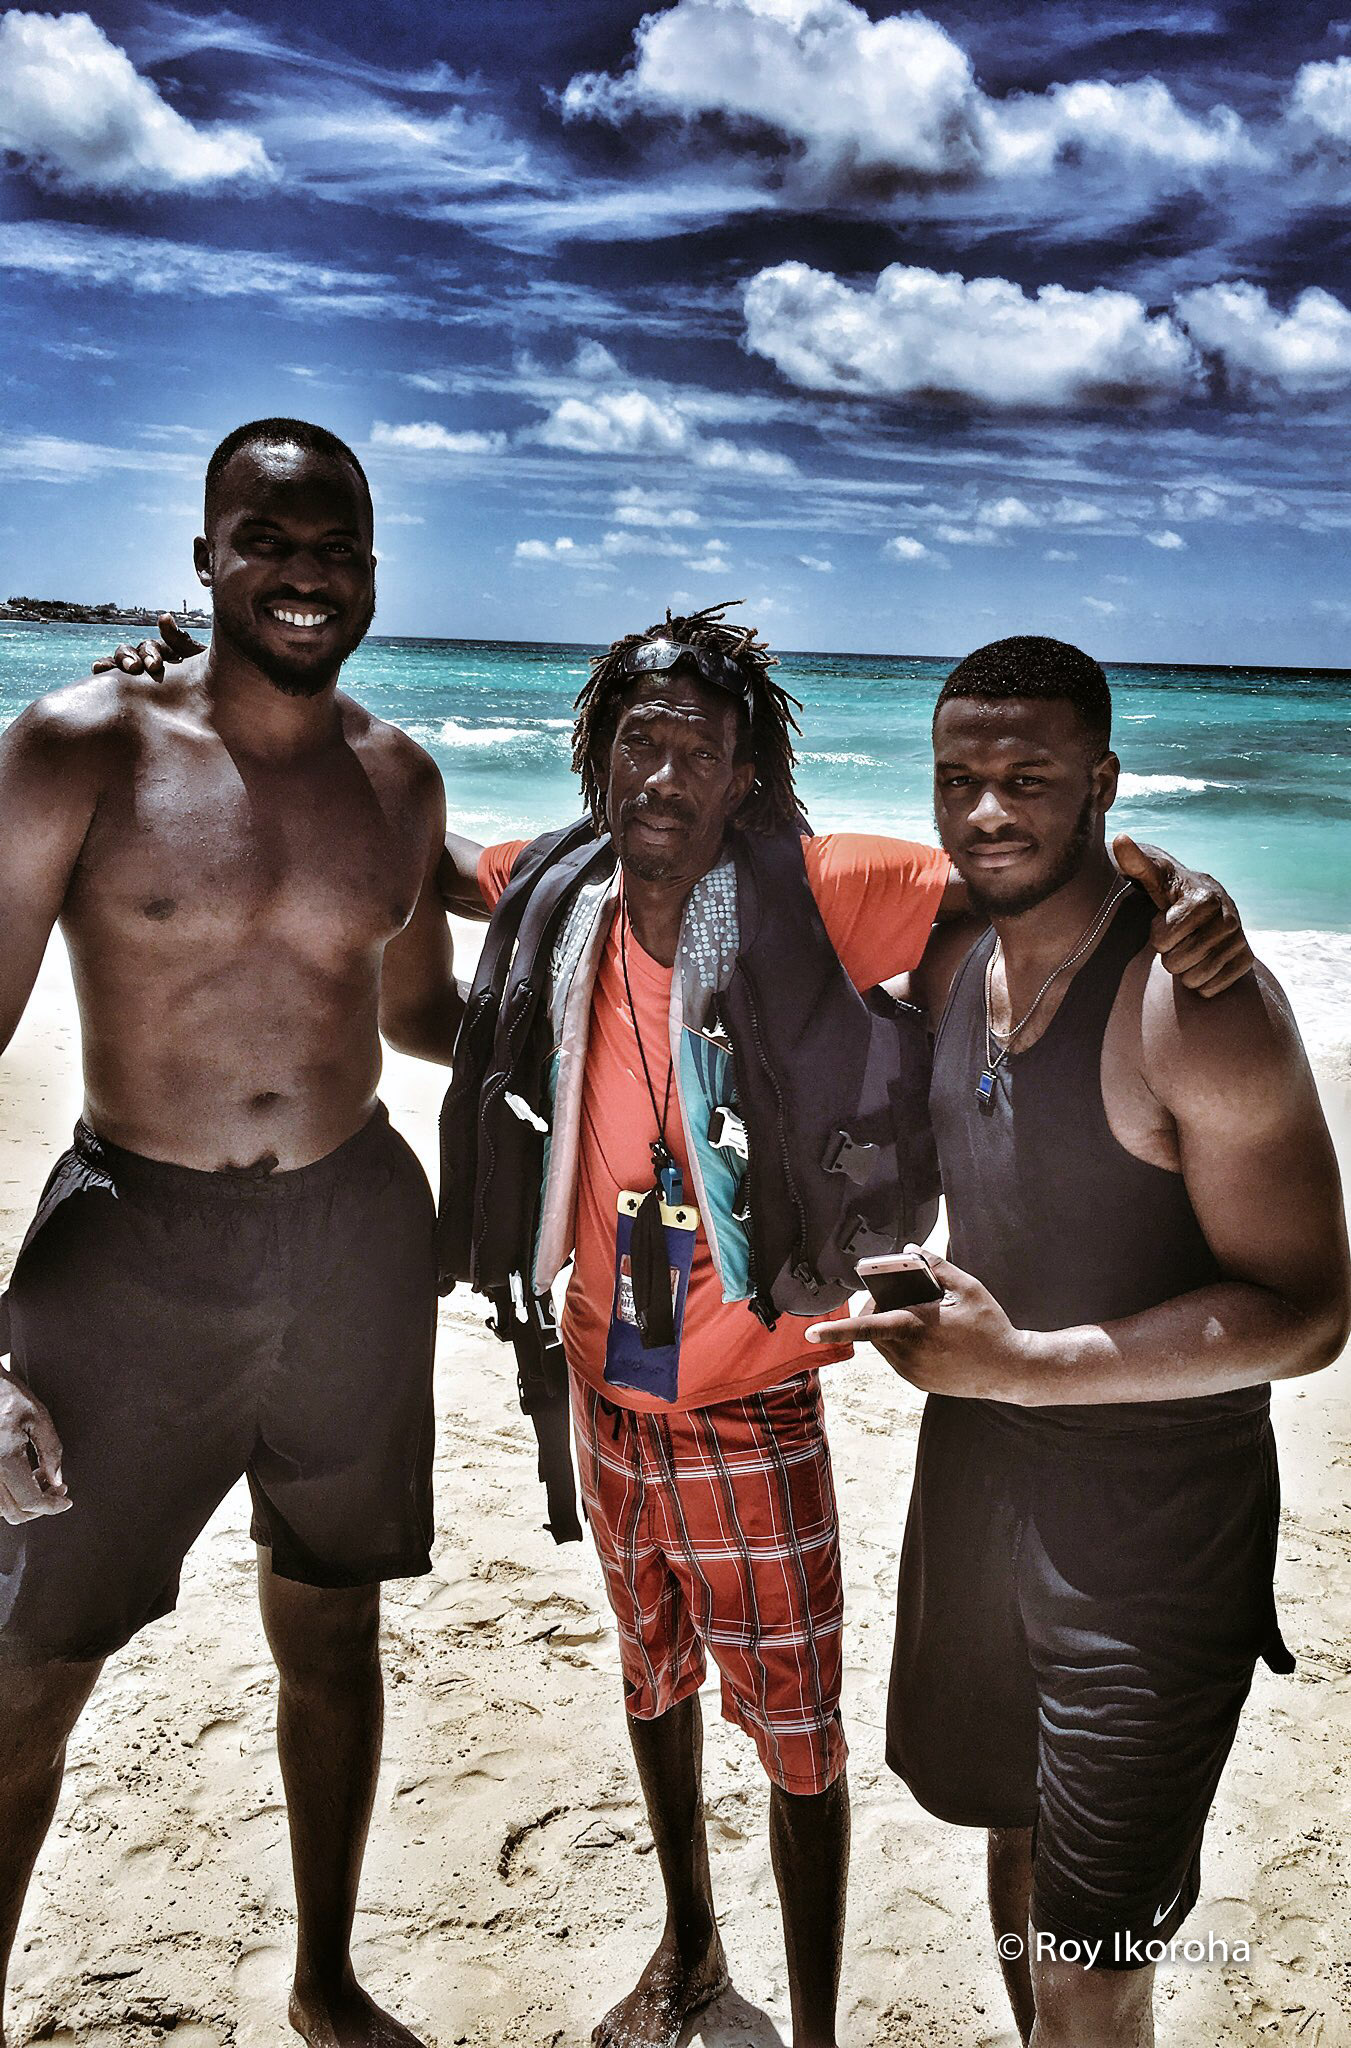 Pictured here with my bro and jet ski instructor Ellis.